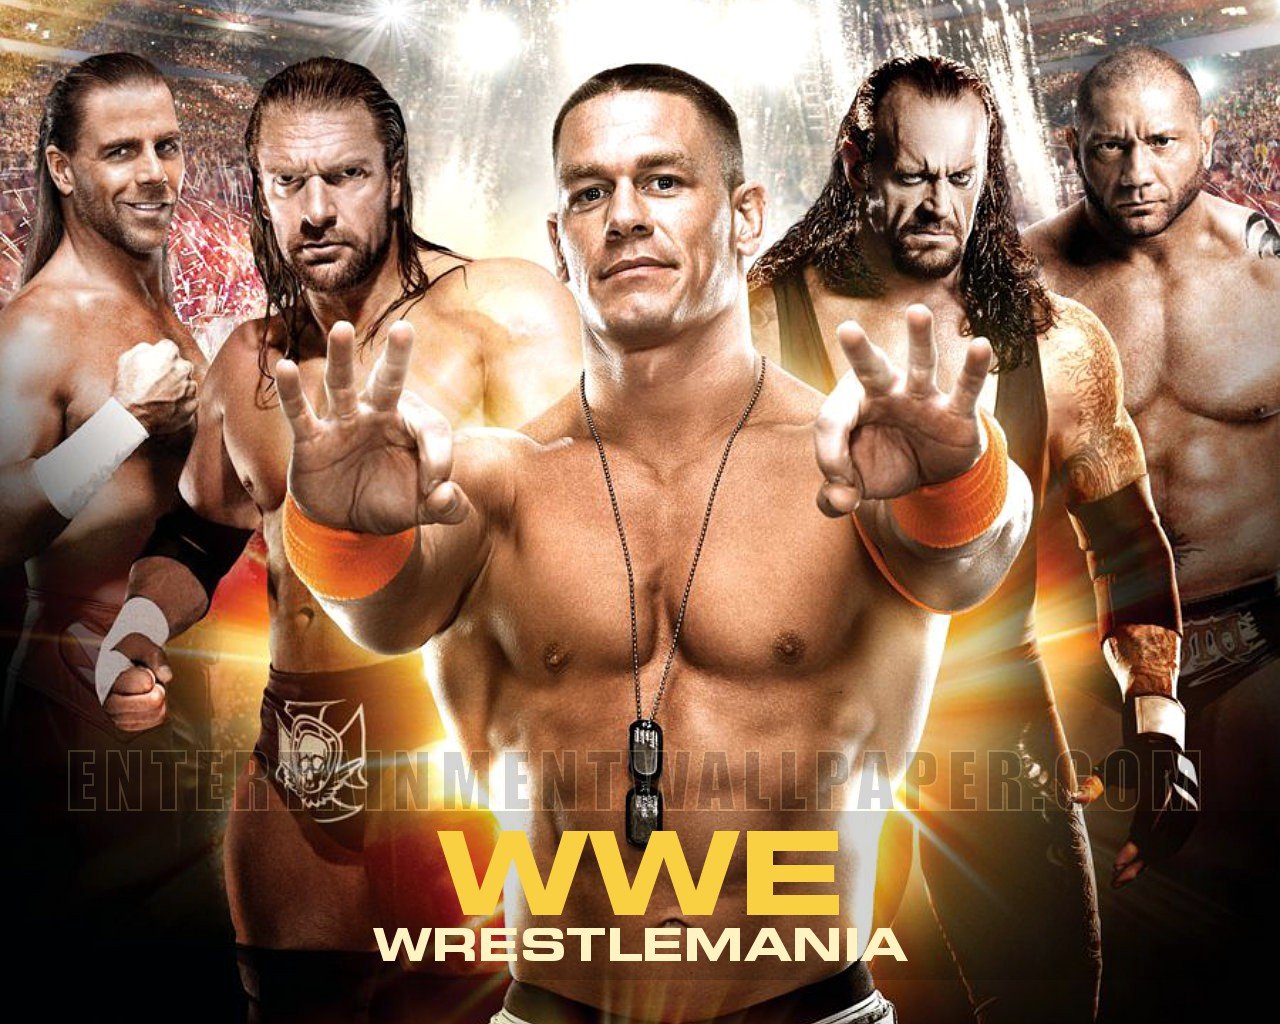 WWE Wrestlemania - WWE Wallpaper (34563994) - Fanpop